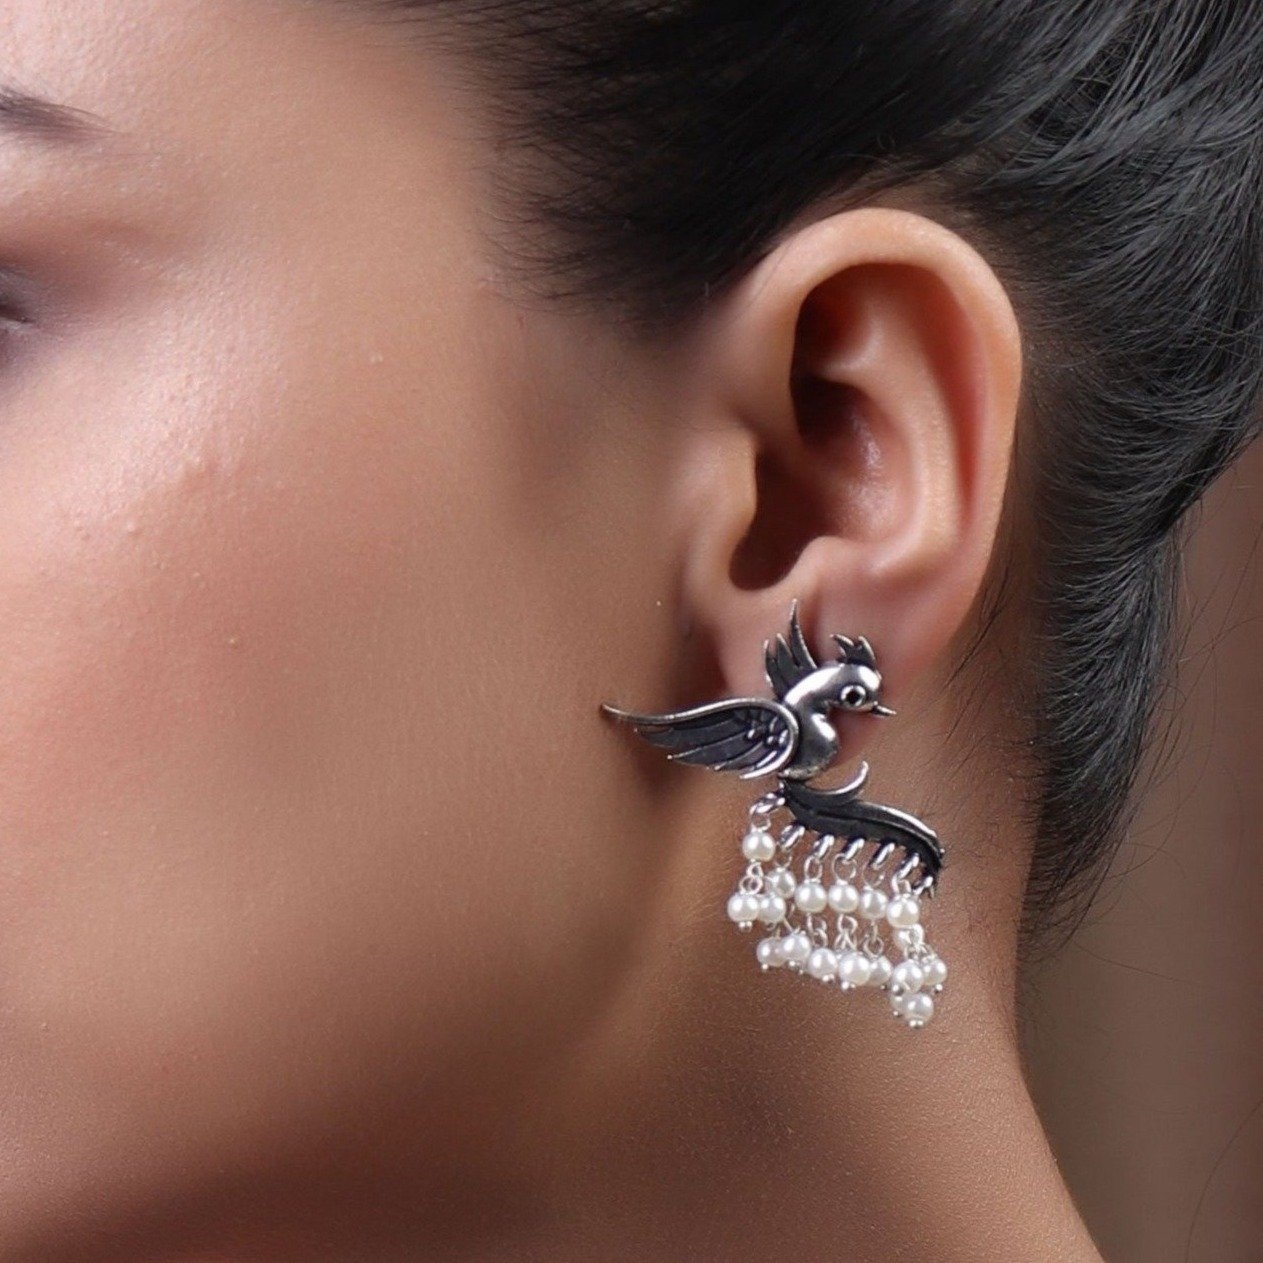 Earrings,Fly with the Bird Silver Look Alike Earring with White Pearls - Cippele Multi Store